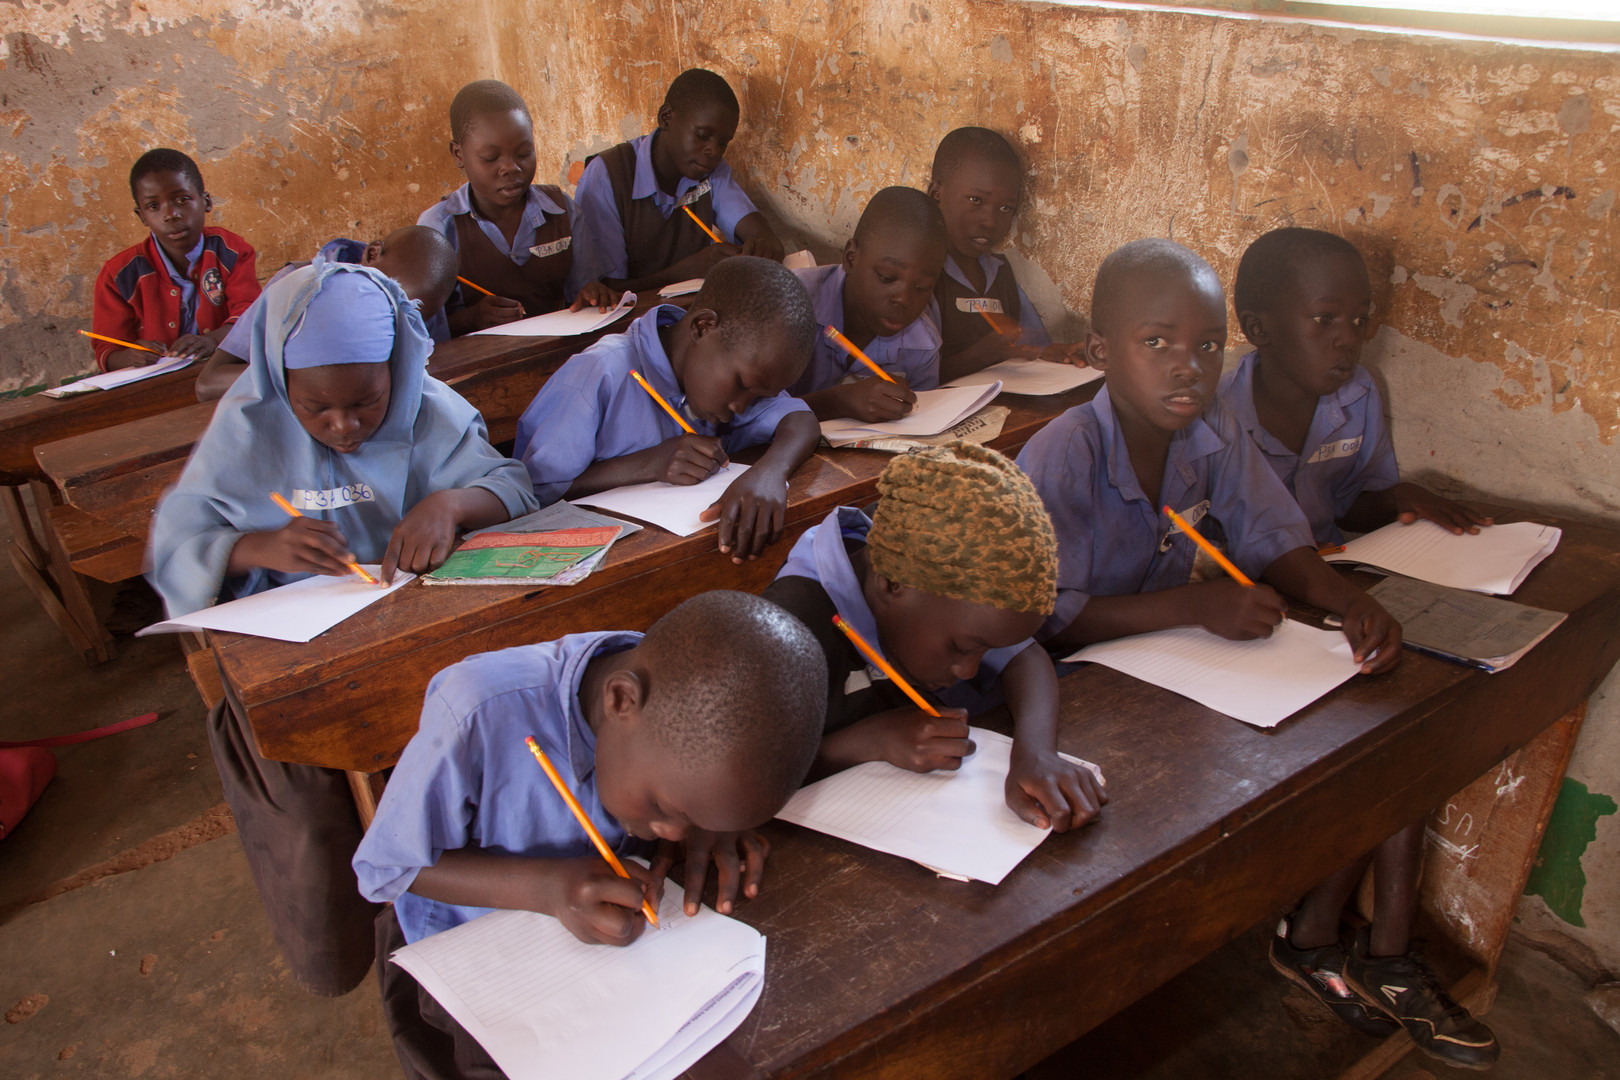 Enumerators also give out math and writing exams, to further assess the pupils' progress.